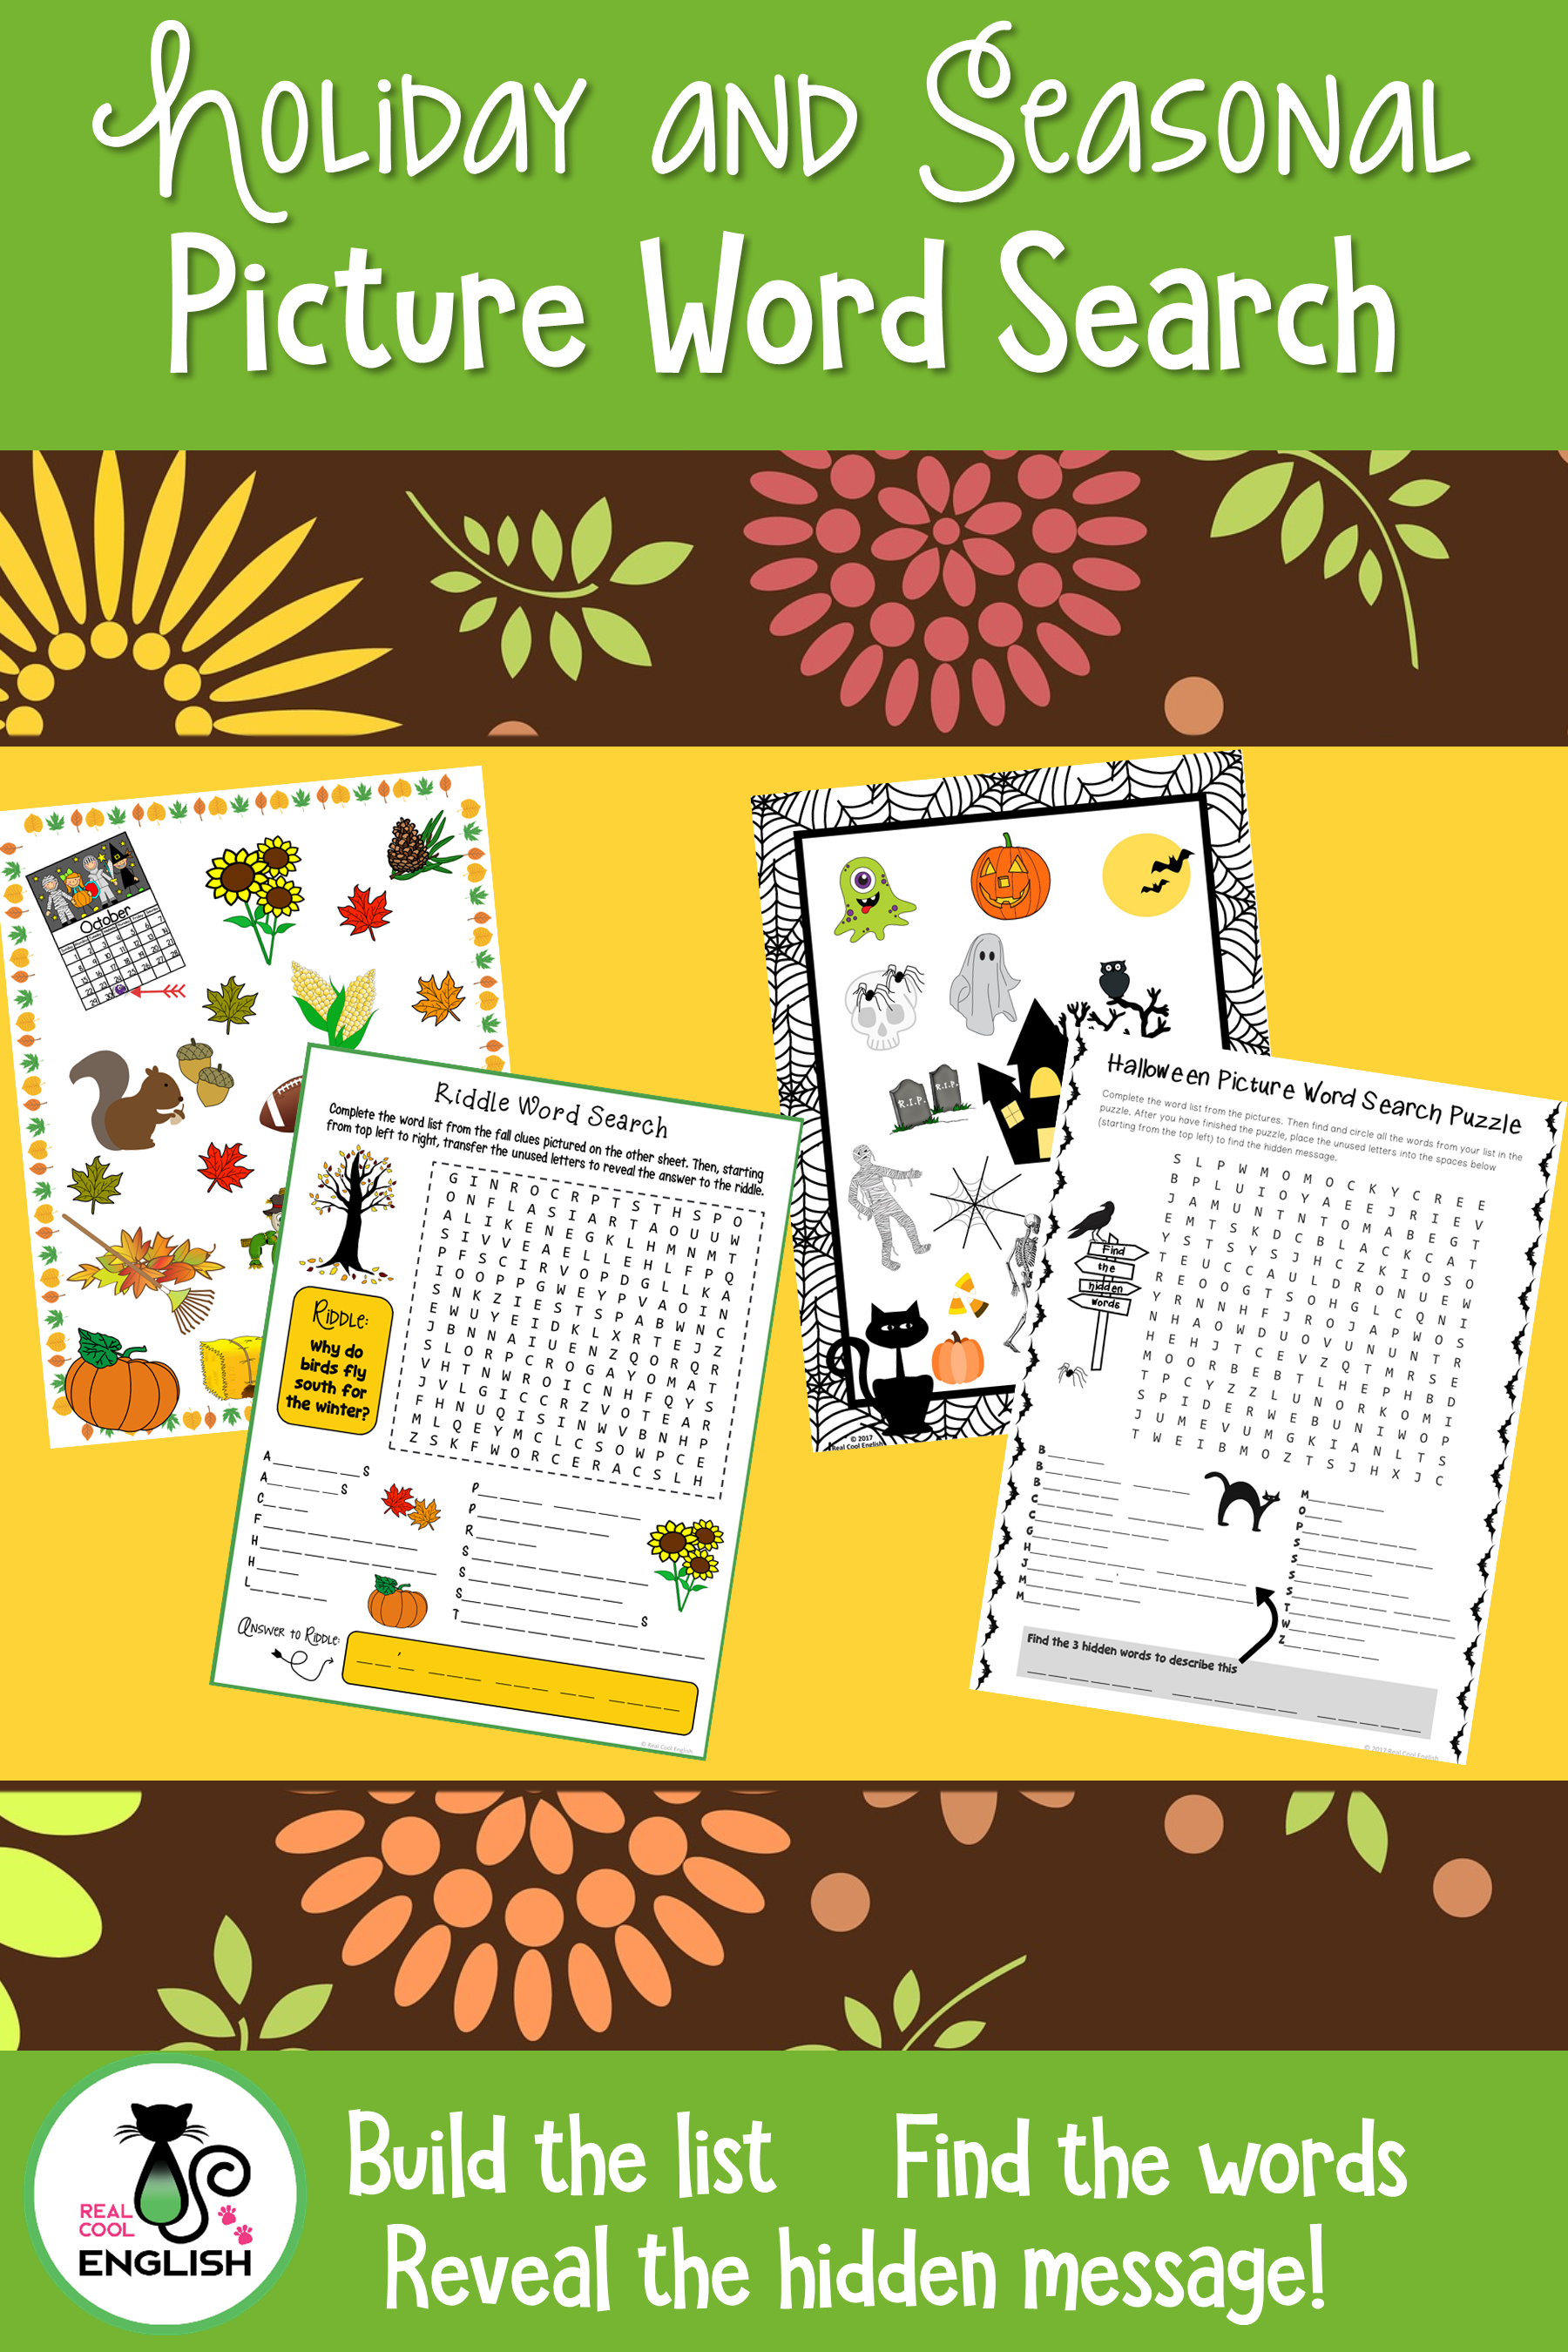 Holiday and Seasonal Puzzles - Picture Word Search Bundle